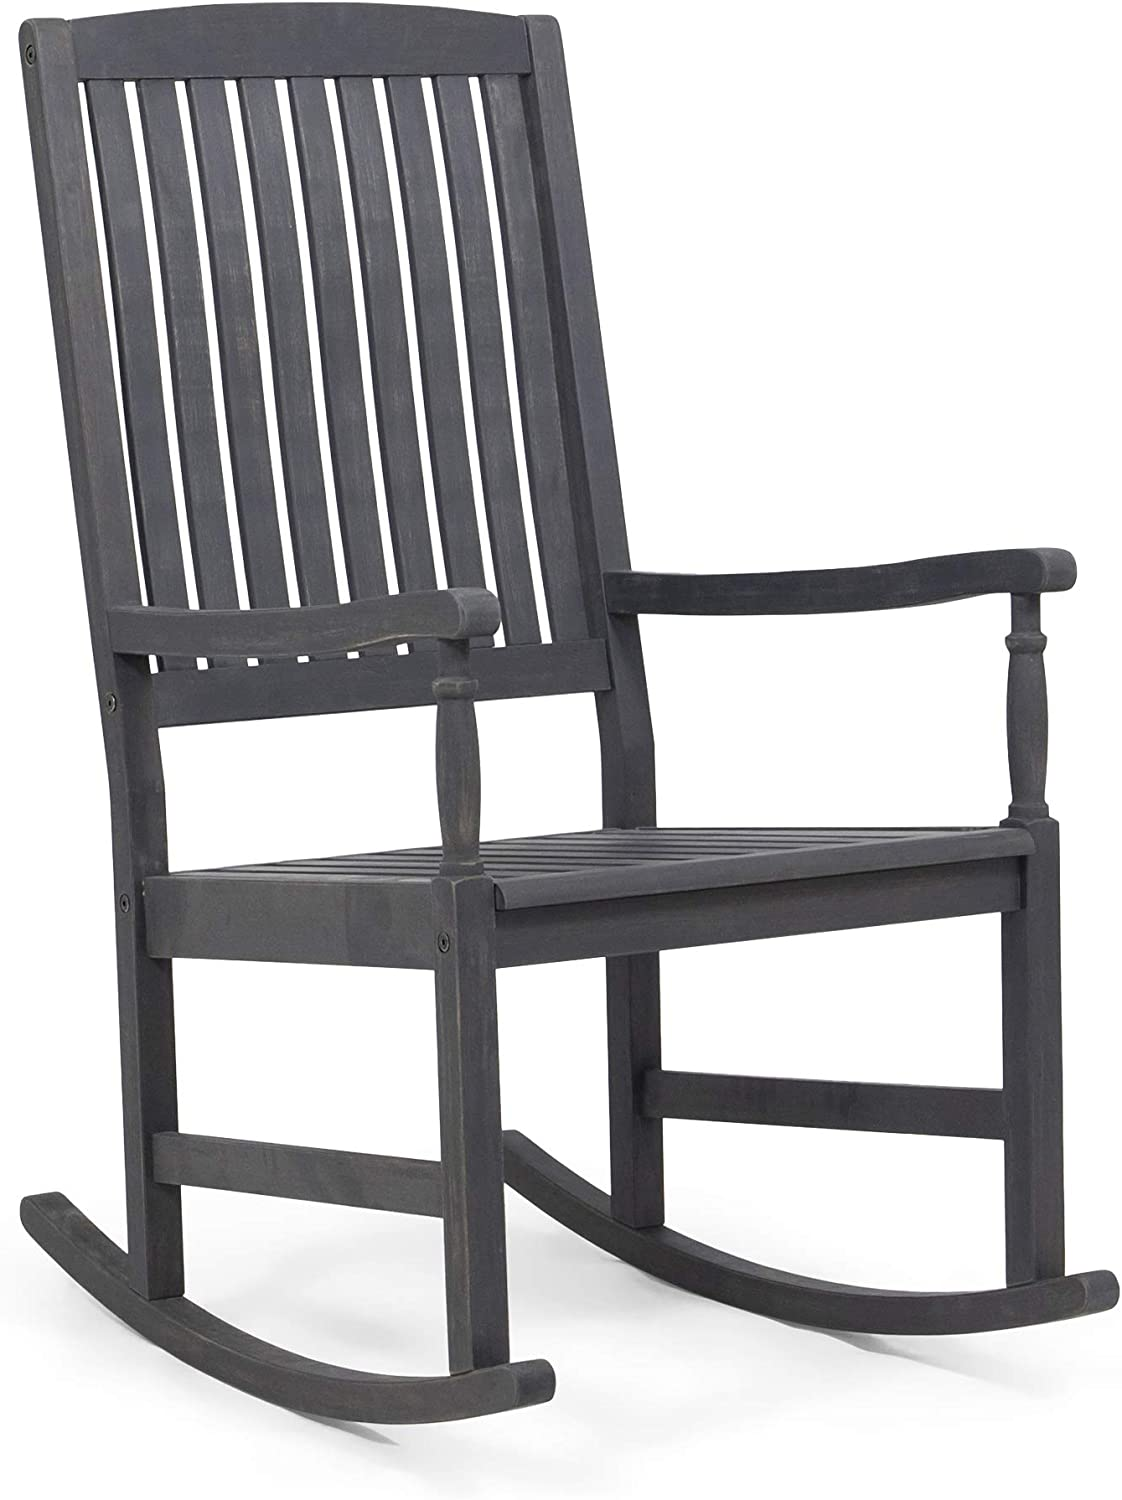 Great Deal Furniture Myrna Outdoor Wood Acacia Chair Da Rocking OFFer Quality inspection